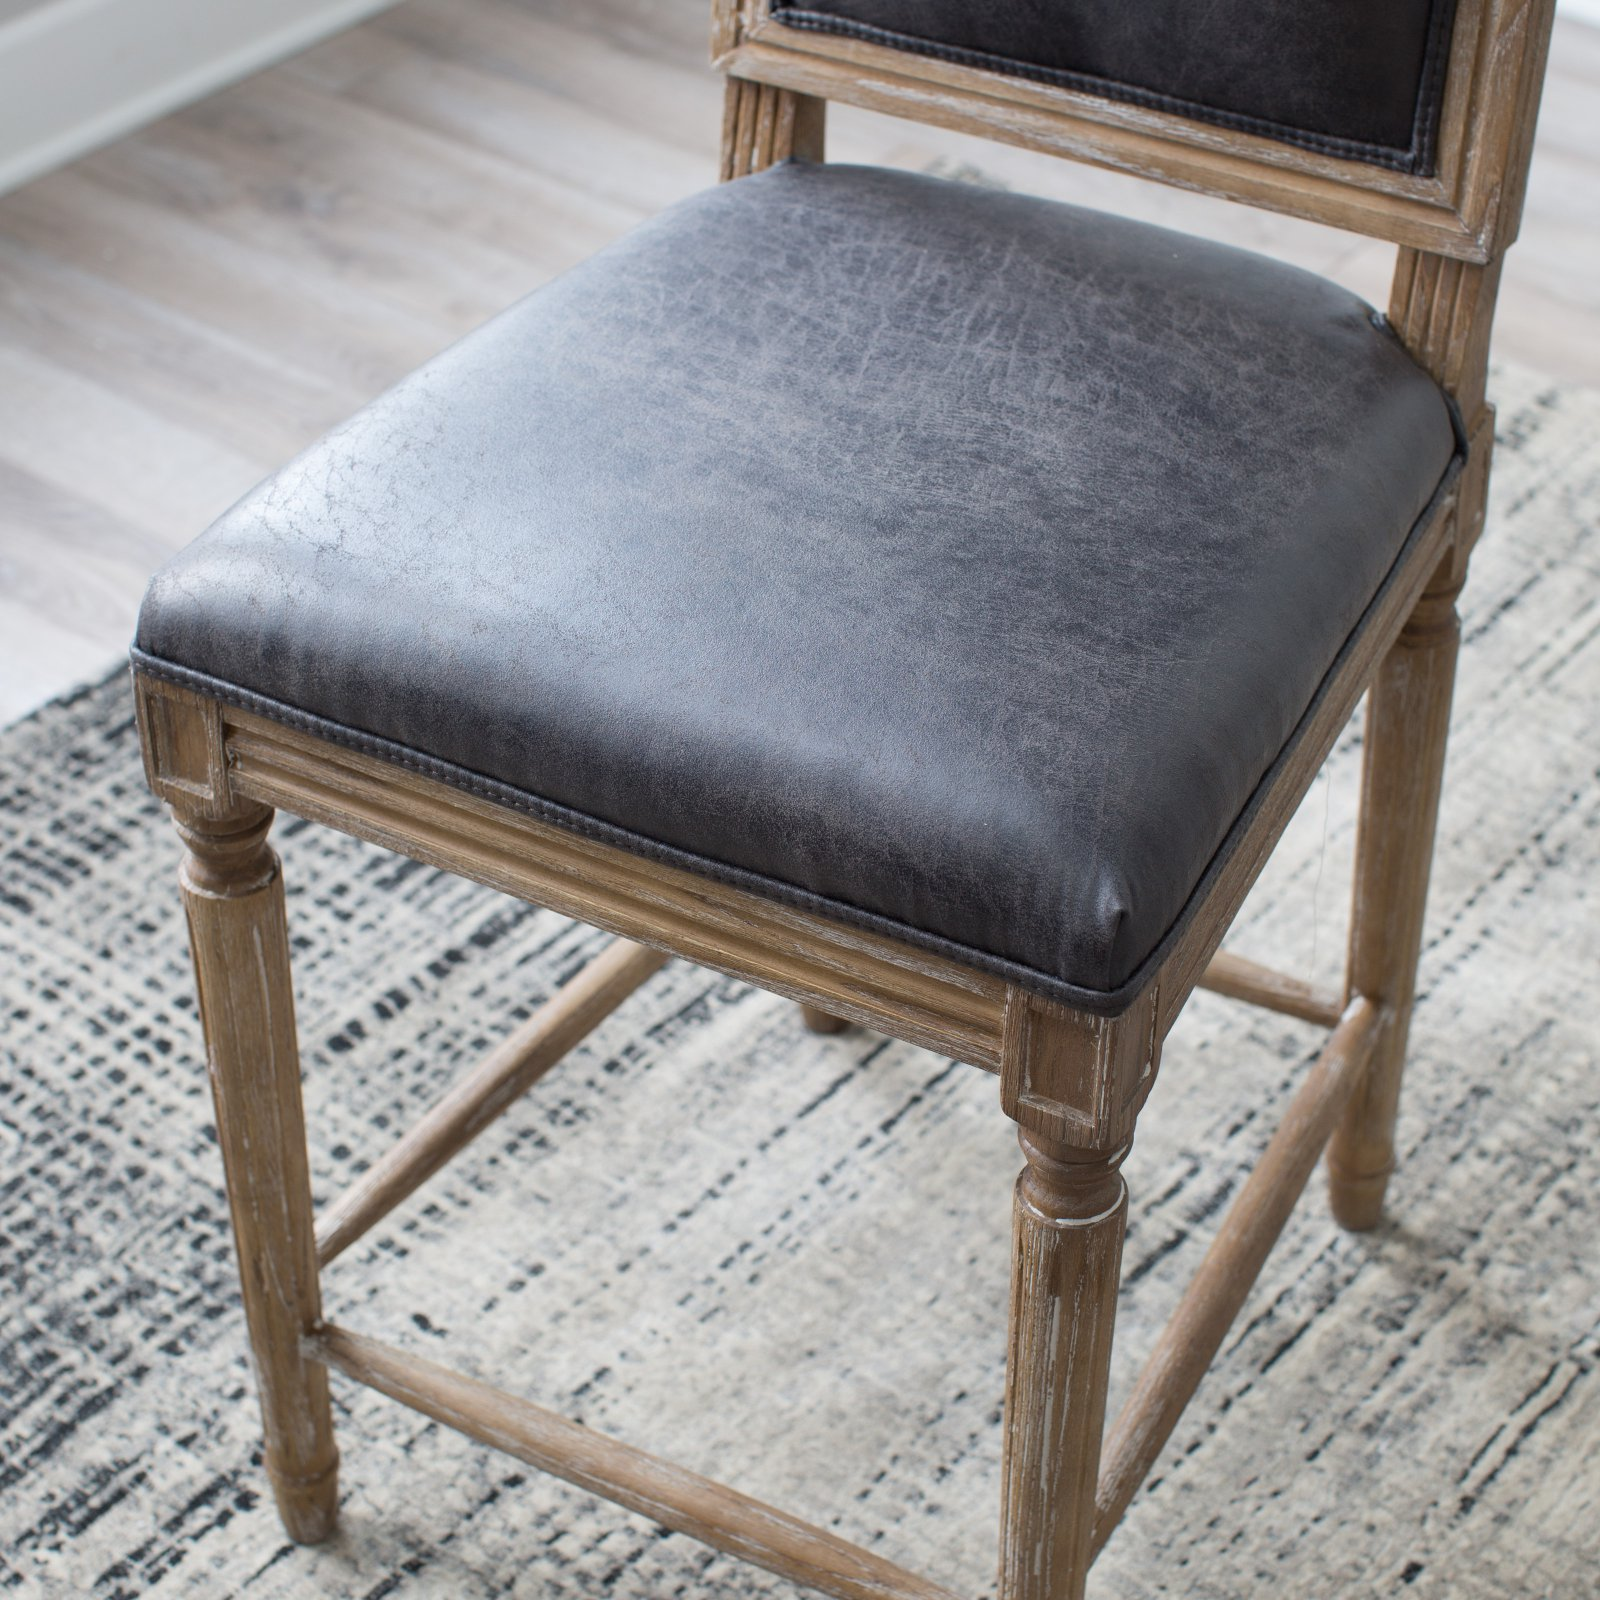 Incredible Belham Living Frederick Square Back Counter Stool Onthecornerstone Fun Painted Chair Ideas Images Onthecornerstoneorg